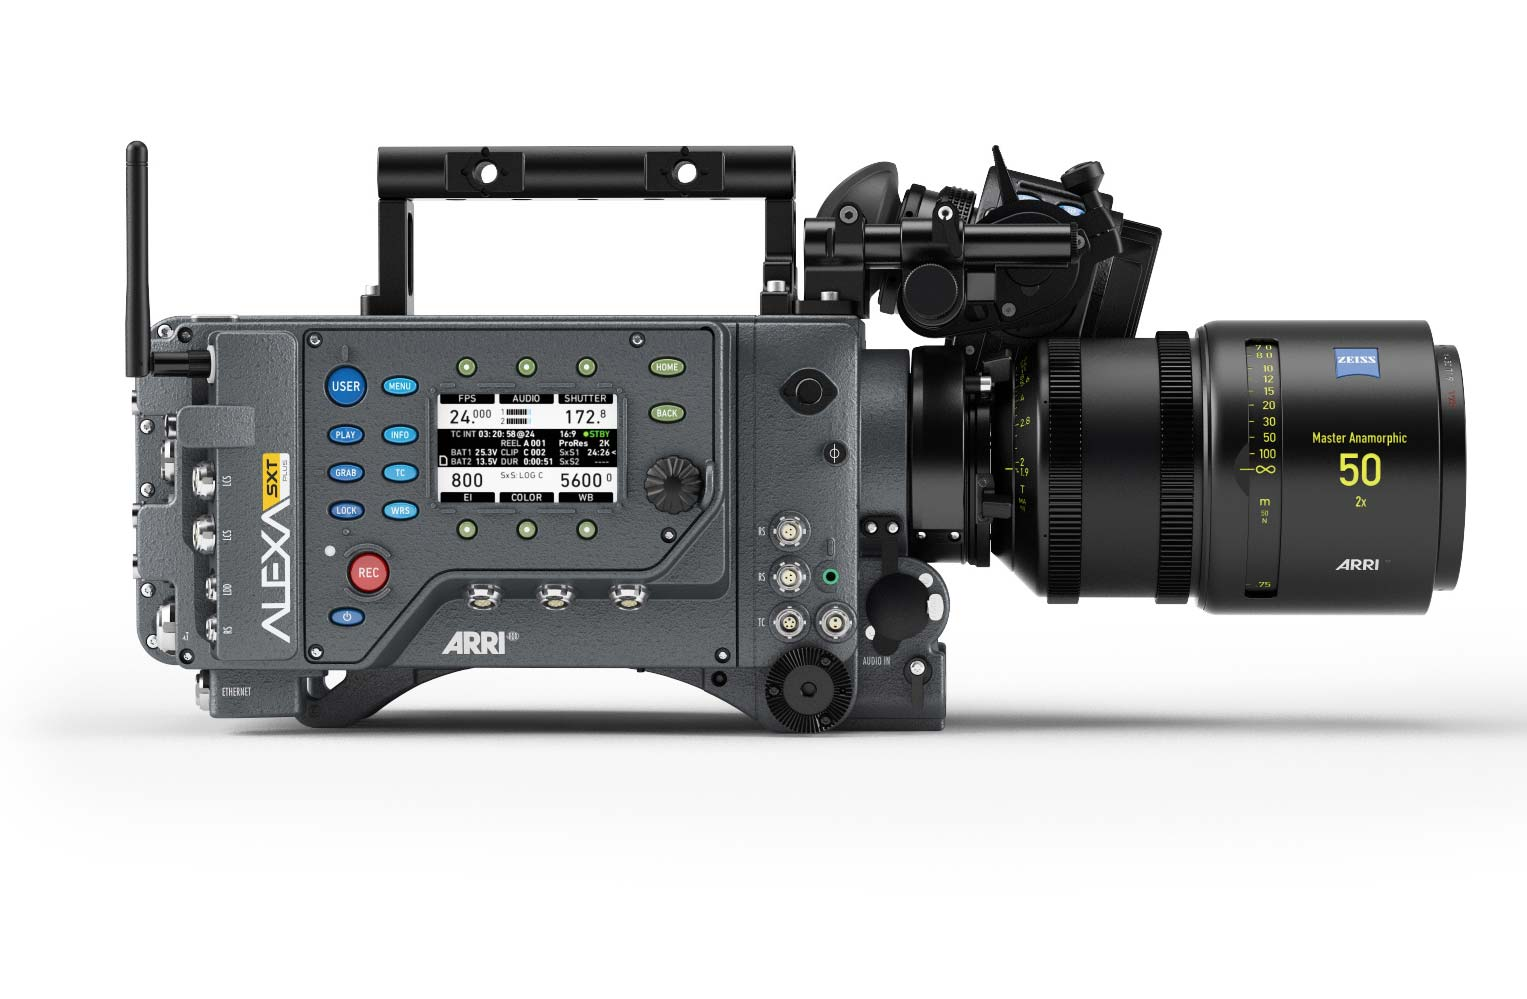 ARRI ALEXA XT Studio Digital Camera Drivers Download Free